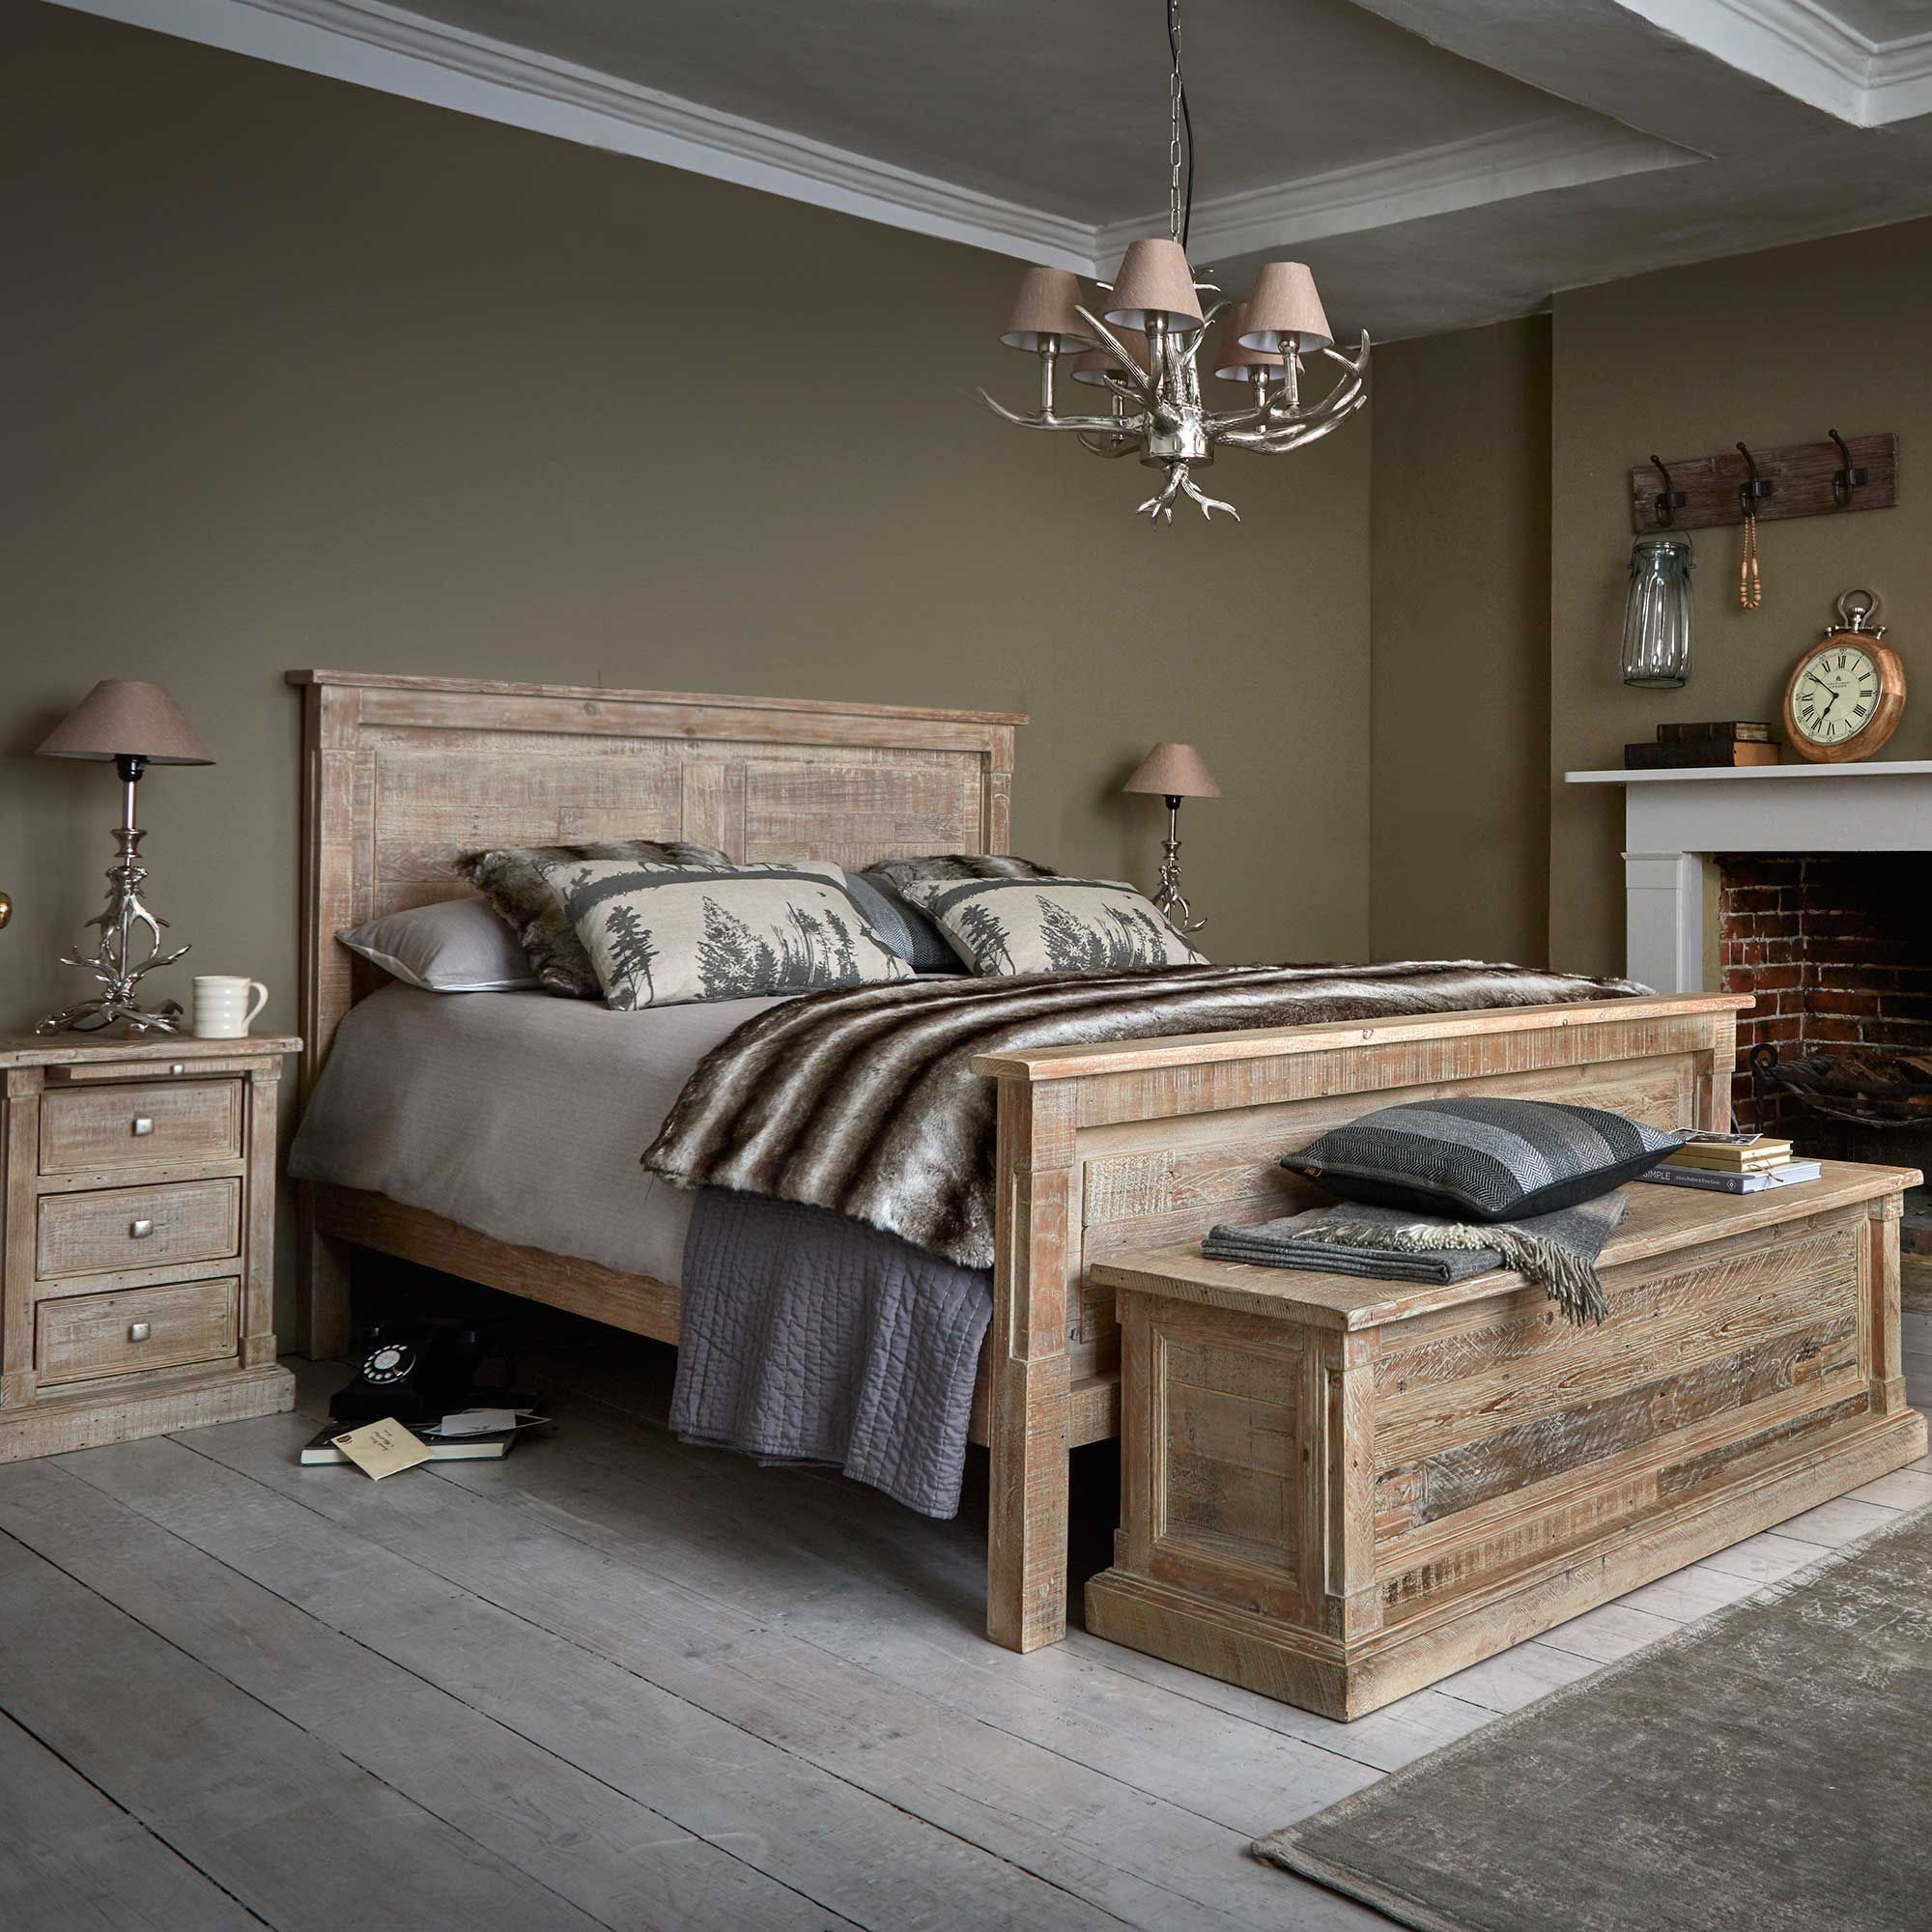 10 Genius Ways How To Makeover Rustic Wood Bedroom Set Rustic Bedroom Furniture Wood Bedroom Sets Bedroom Furniture Sets